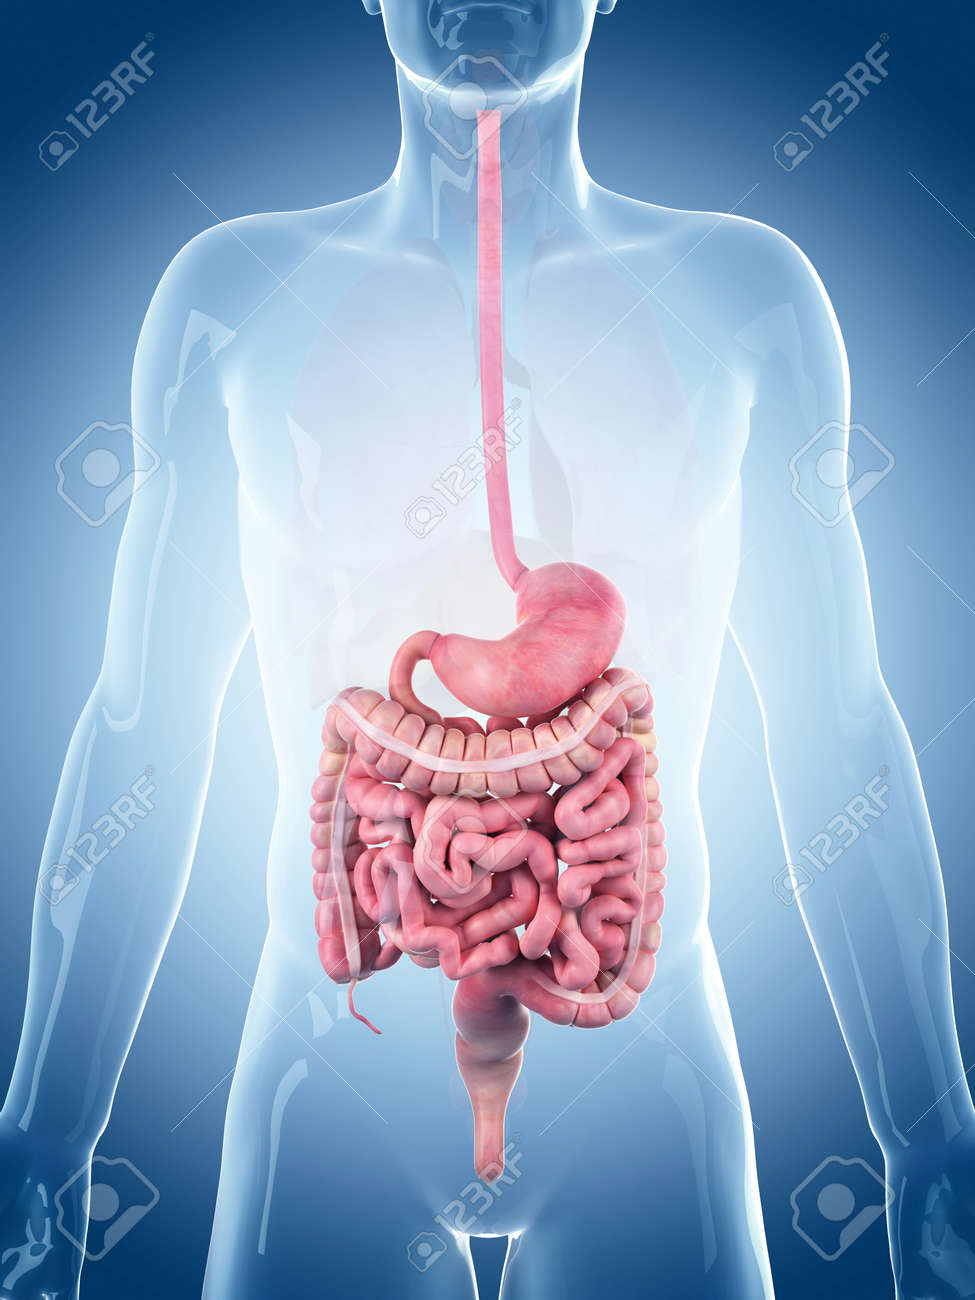 medically accurate illustration of the digestive system - 45345847